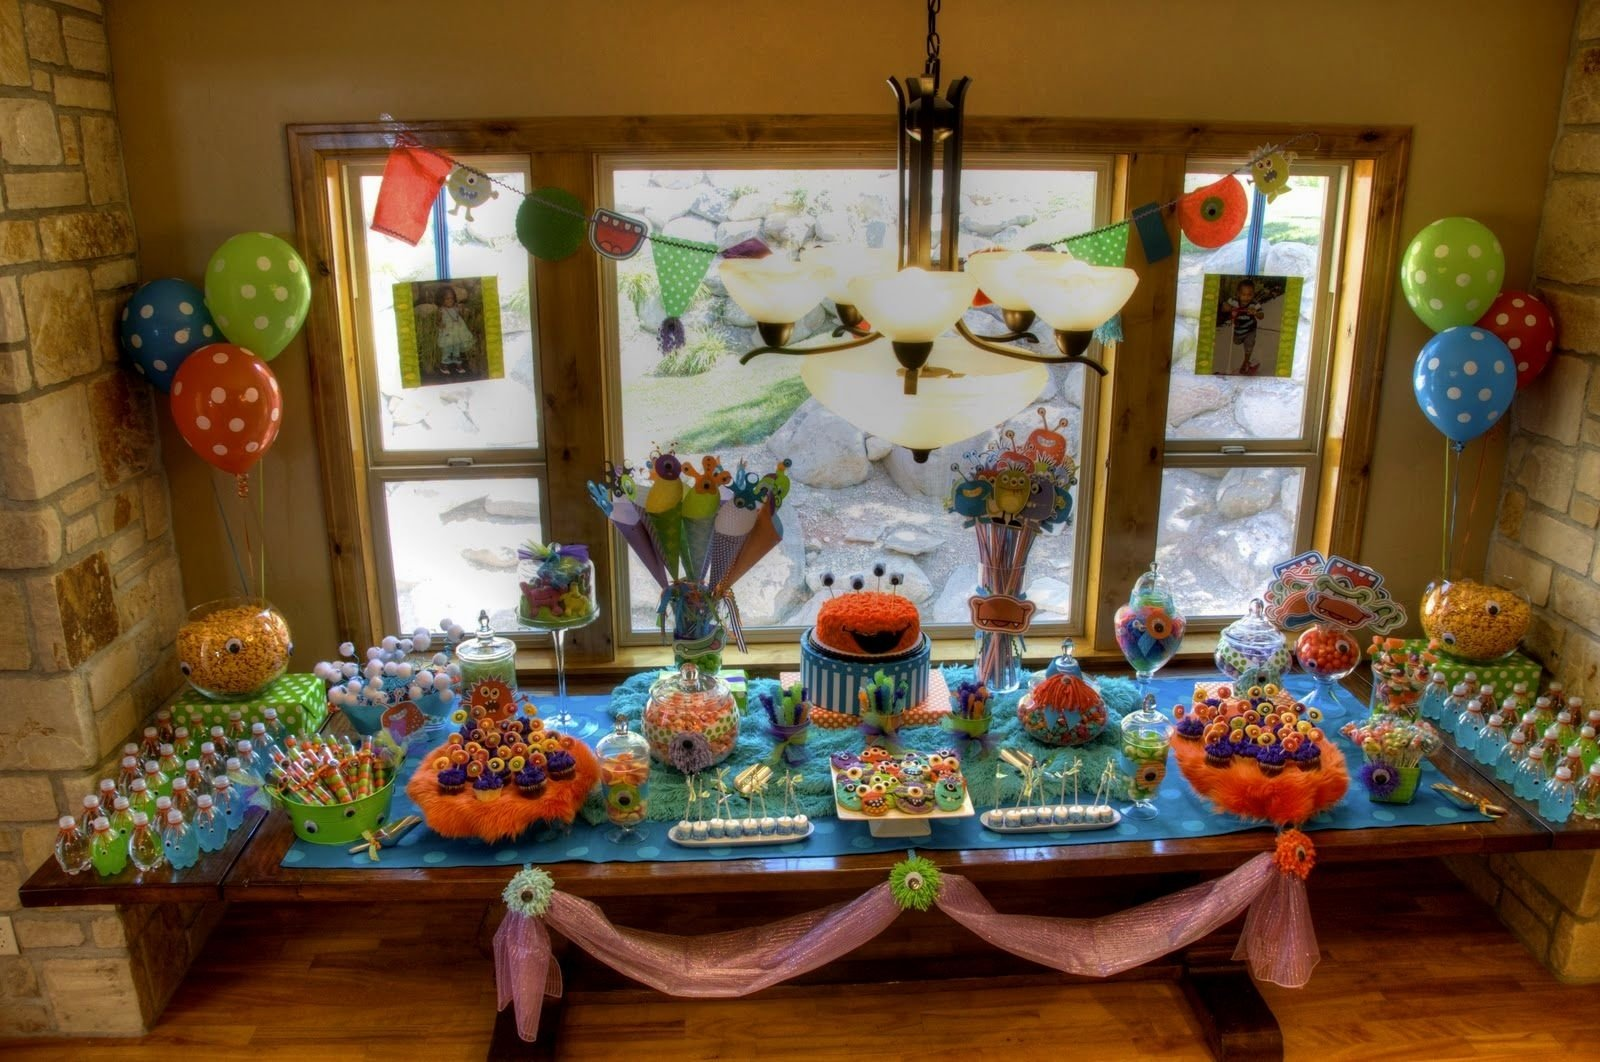 10 Stunning 4 Year Old Party Ideas 8 year old boy birthday party theme ideas winter birthday party